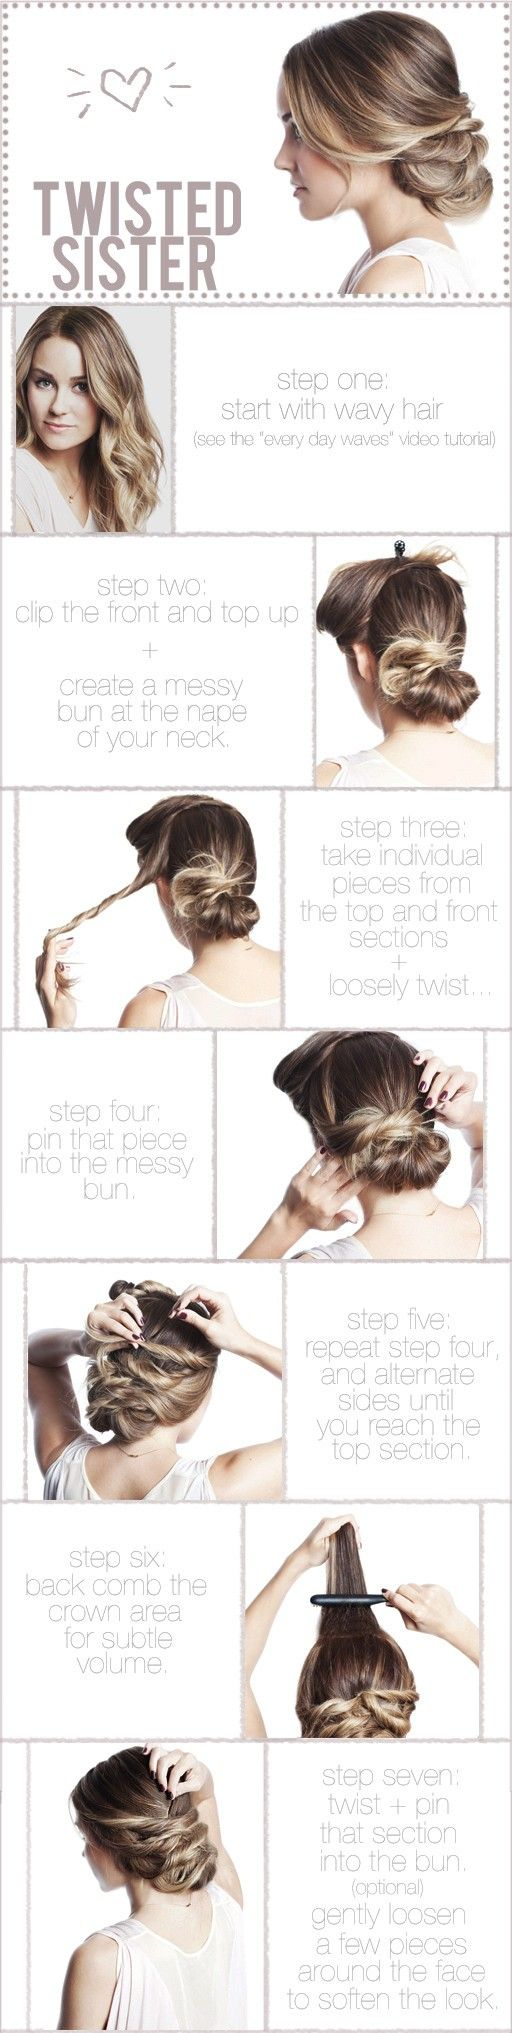 really cute, but i need to find bobby pins that work well for hair as thin and fine as mine.